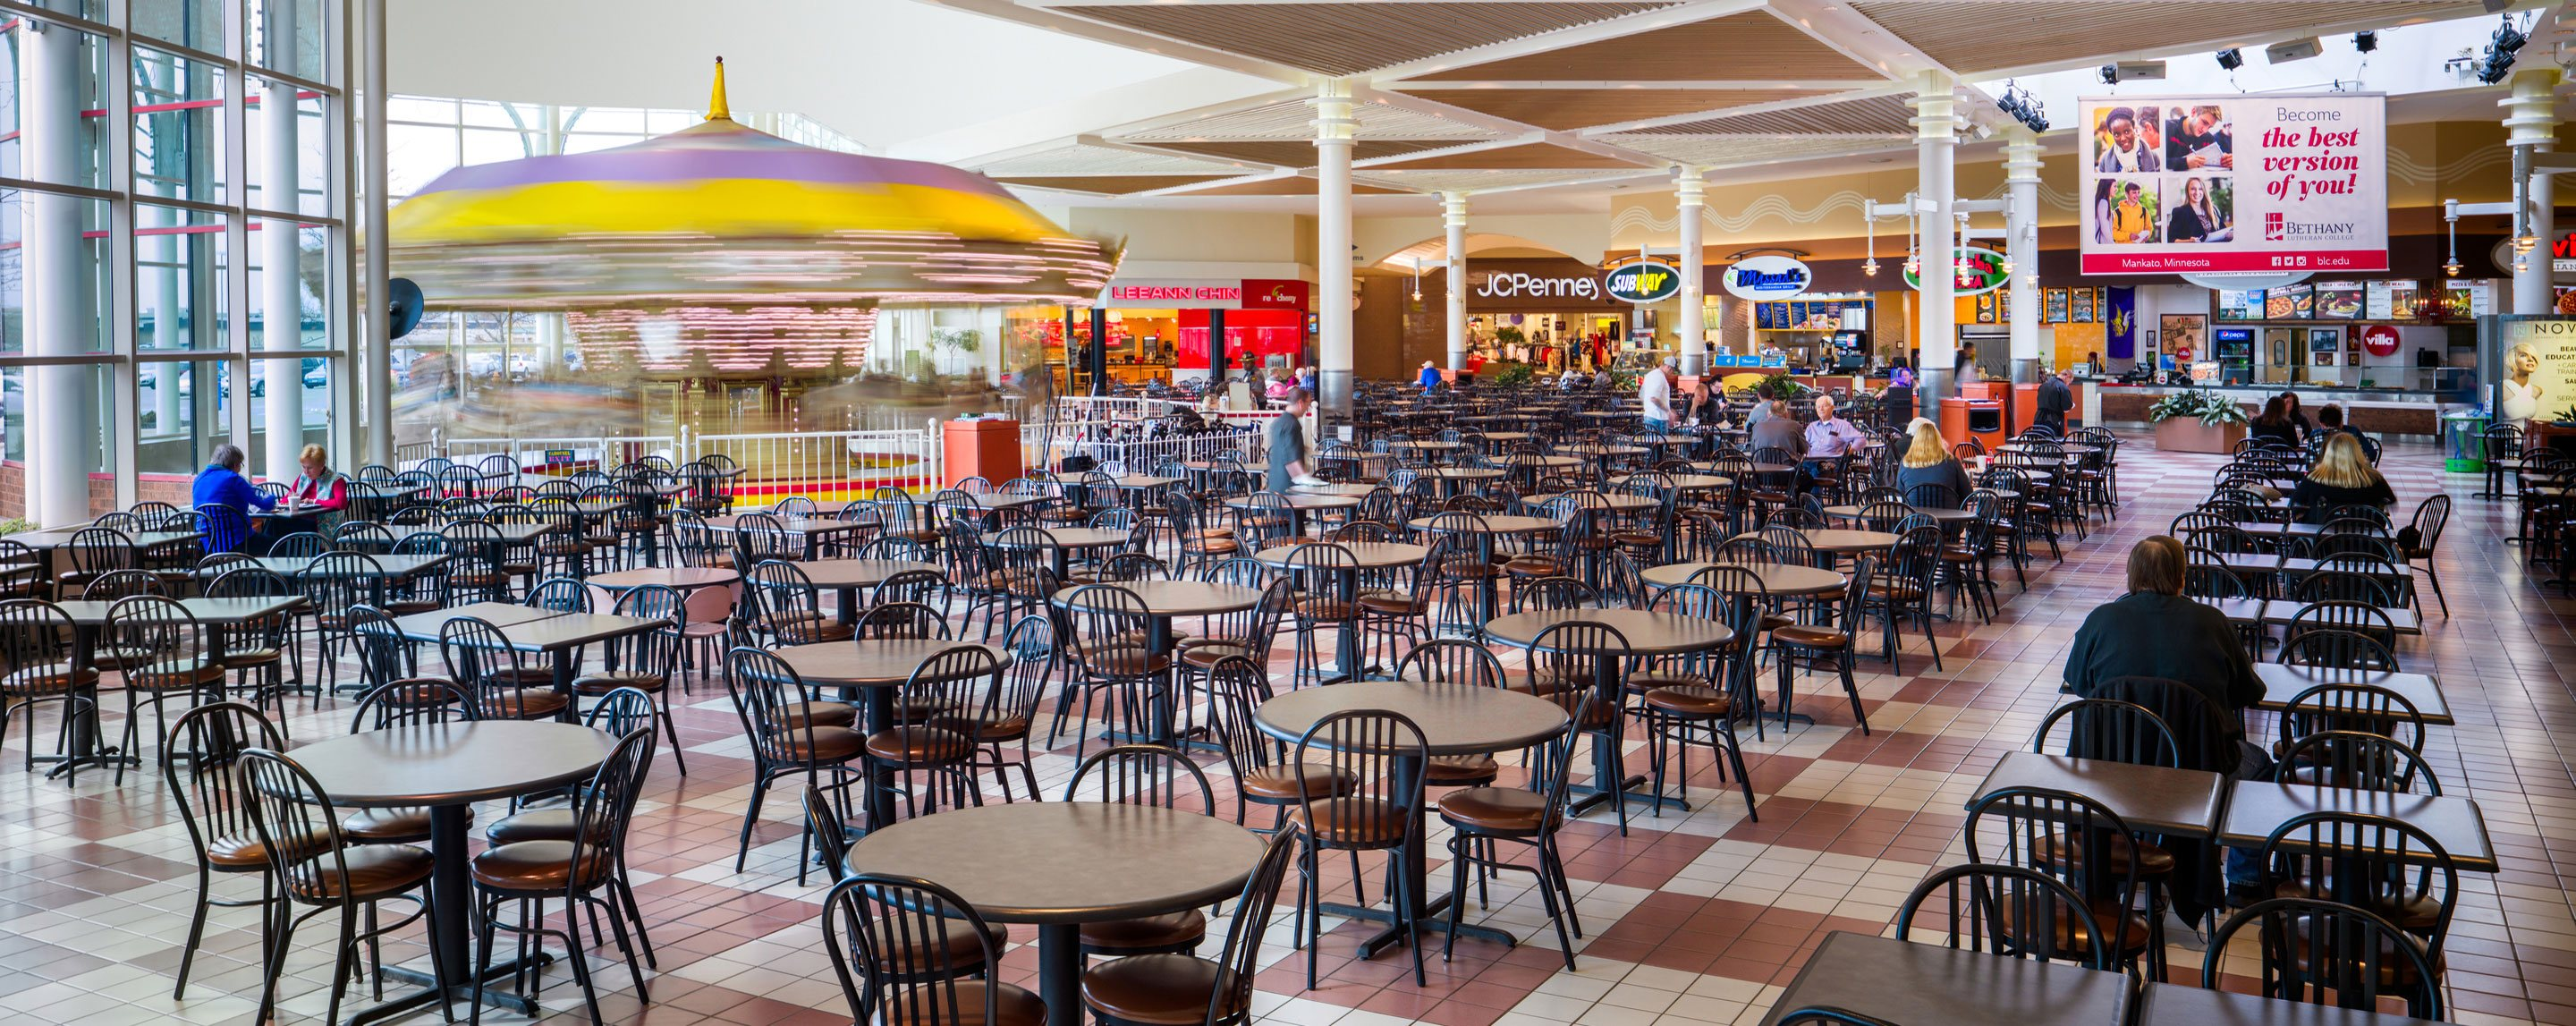 A mostly empty dining area at a food court with numerous tables with basic chairs. JCPenney and Subway are nearby.